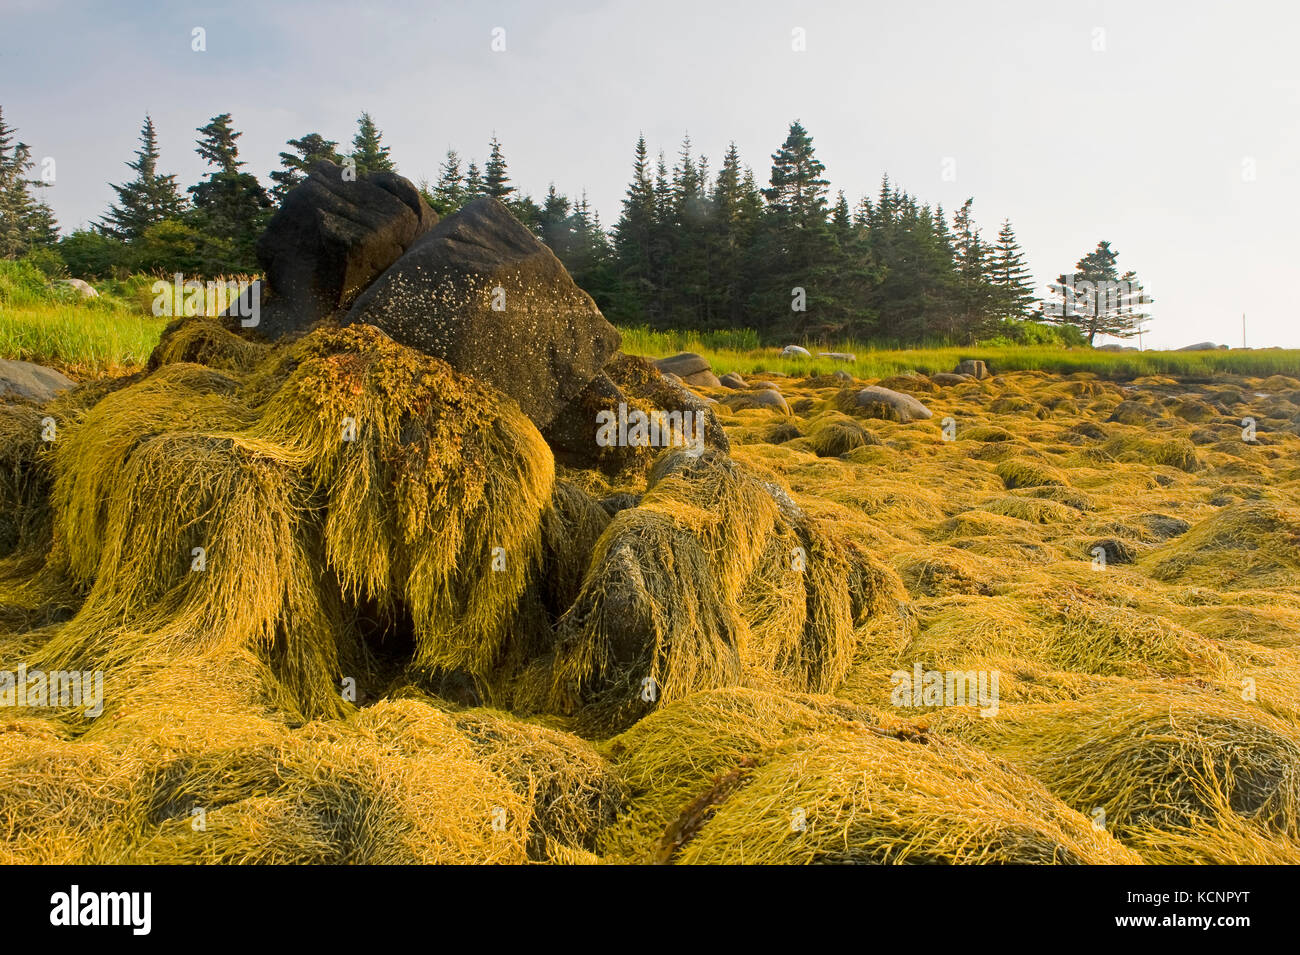 rockweed at low tide along the Bay of Fundy, Bear Point, Nova Scotia, Canada - Stock Image